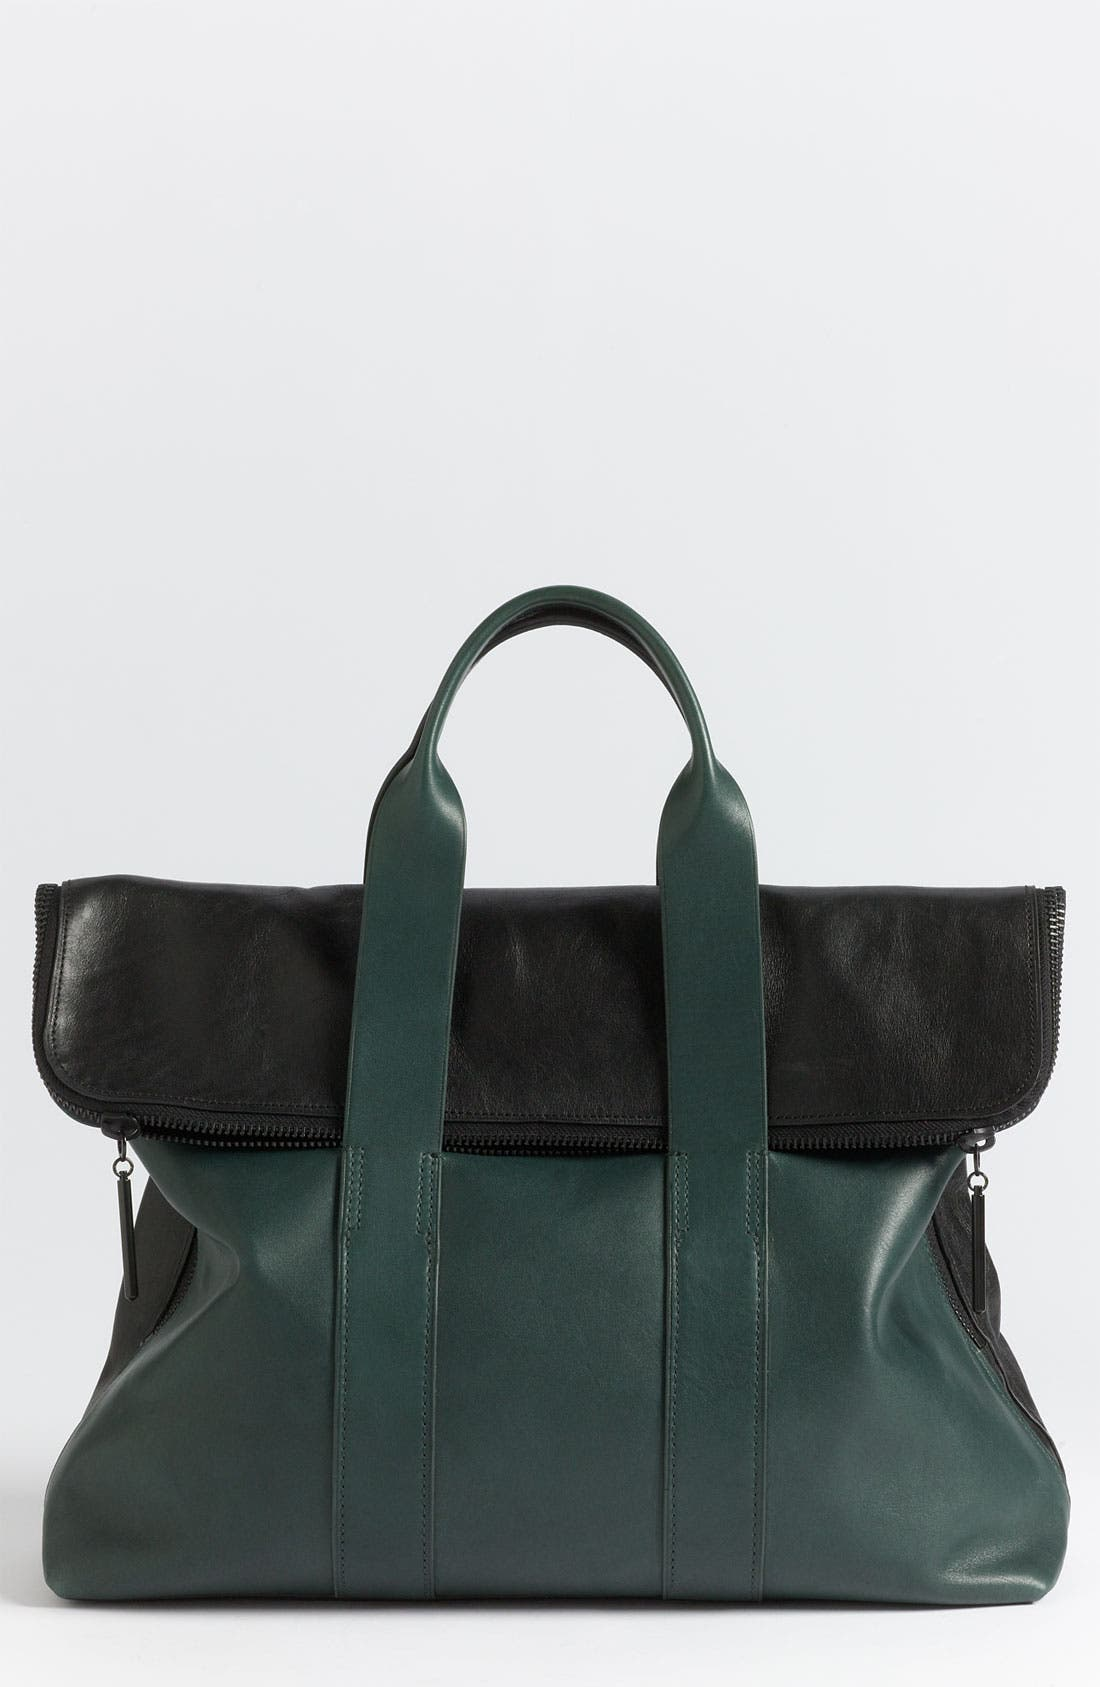 Alternate Image 1 Selected - 3.1 Phillip Lim '31 Hour' Leather Tote